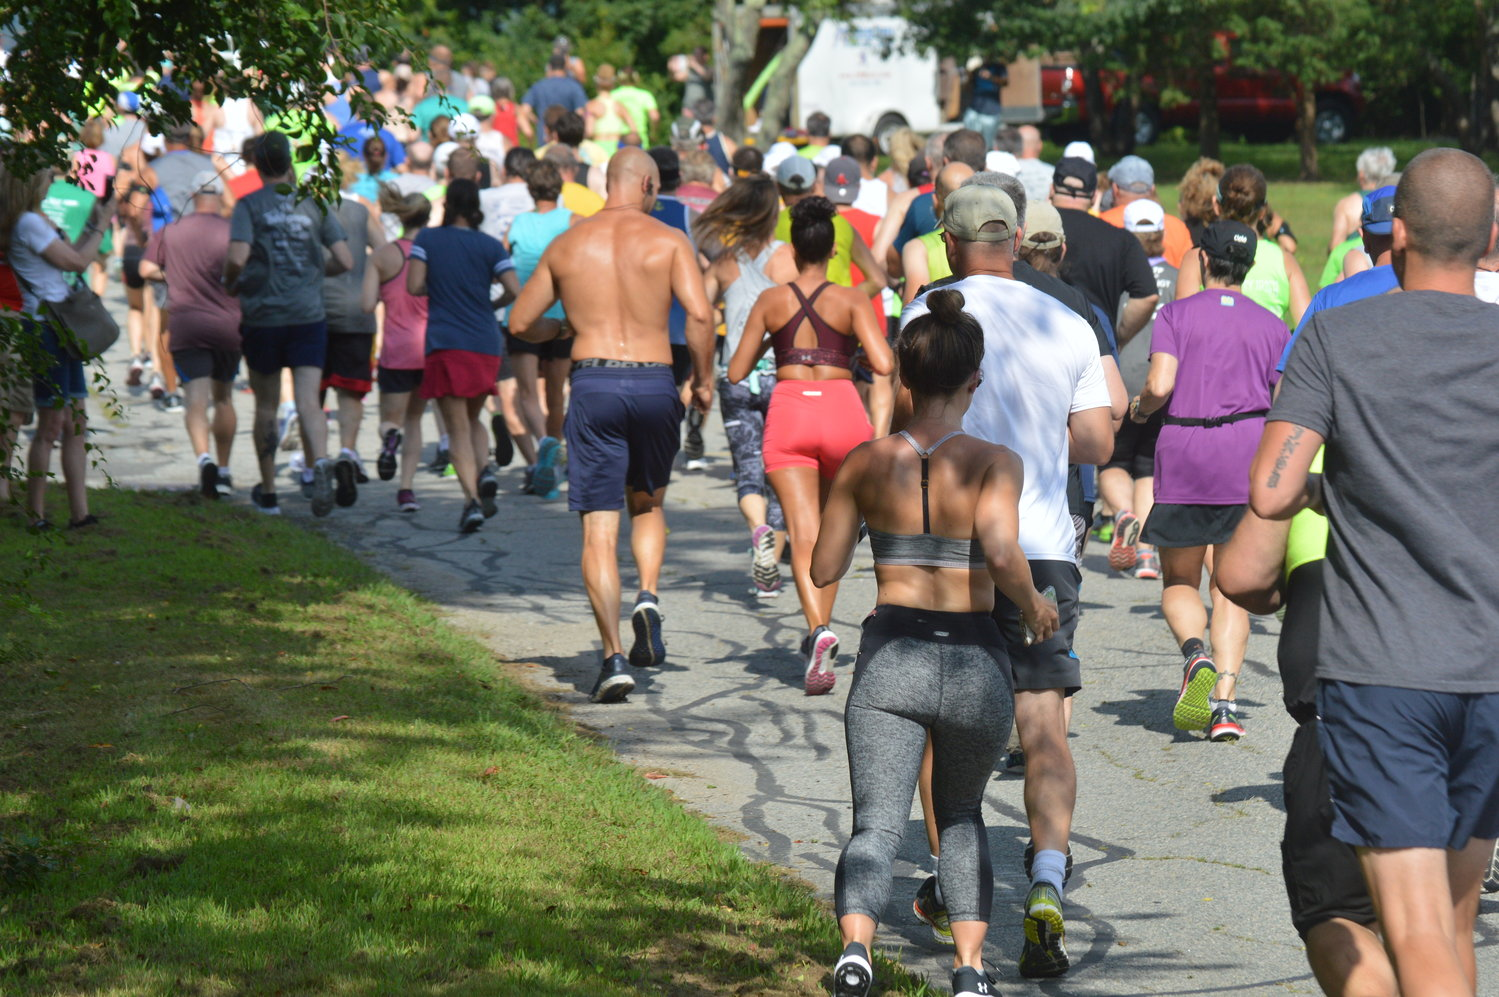 Participants in the Common Fence Point 5 Miler are off and running at the start of the race along Common Fence Point Boulevard.